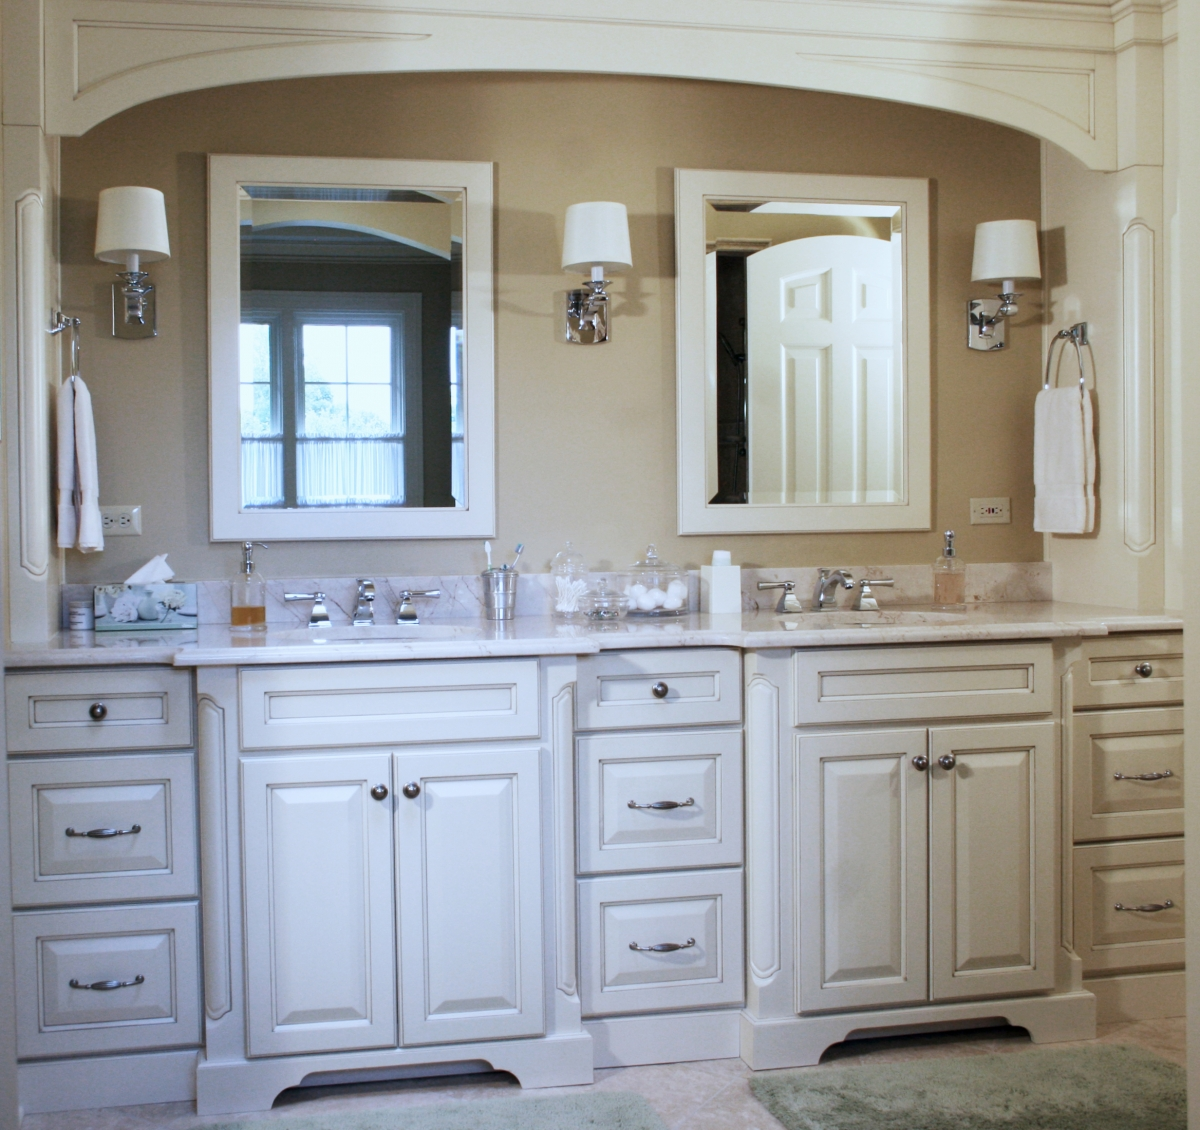 Custom Bathroom Vanities Naperville amish cabinetry naperville | amish kitchen cabinets | amish